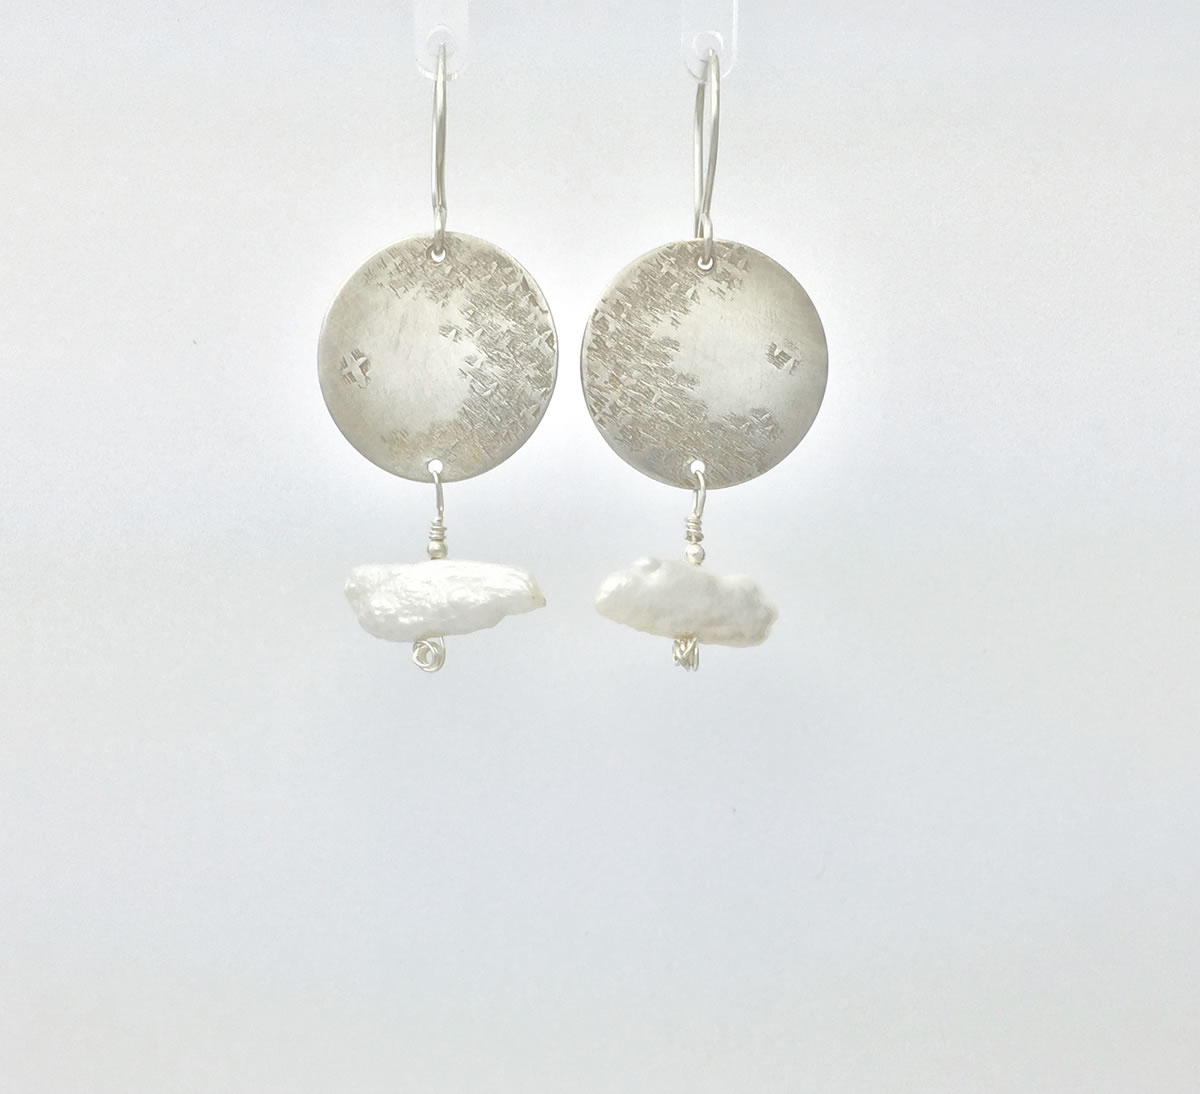 0023 - Silver handmade earrings hammered pearl biwa stick serenity Kathleen Barris Jewelry